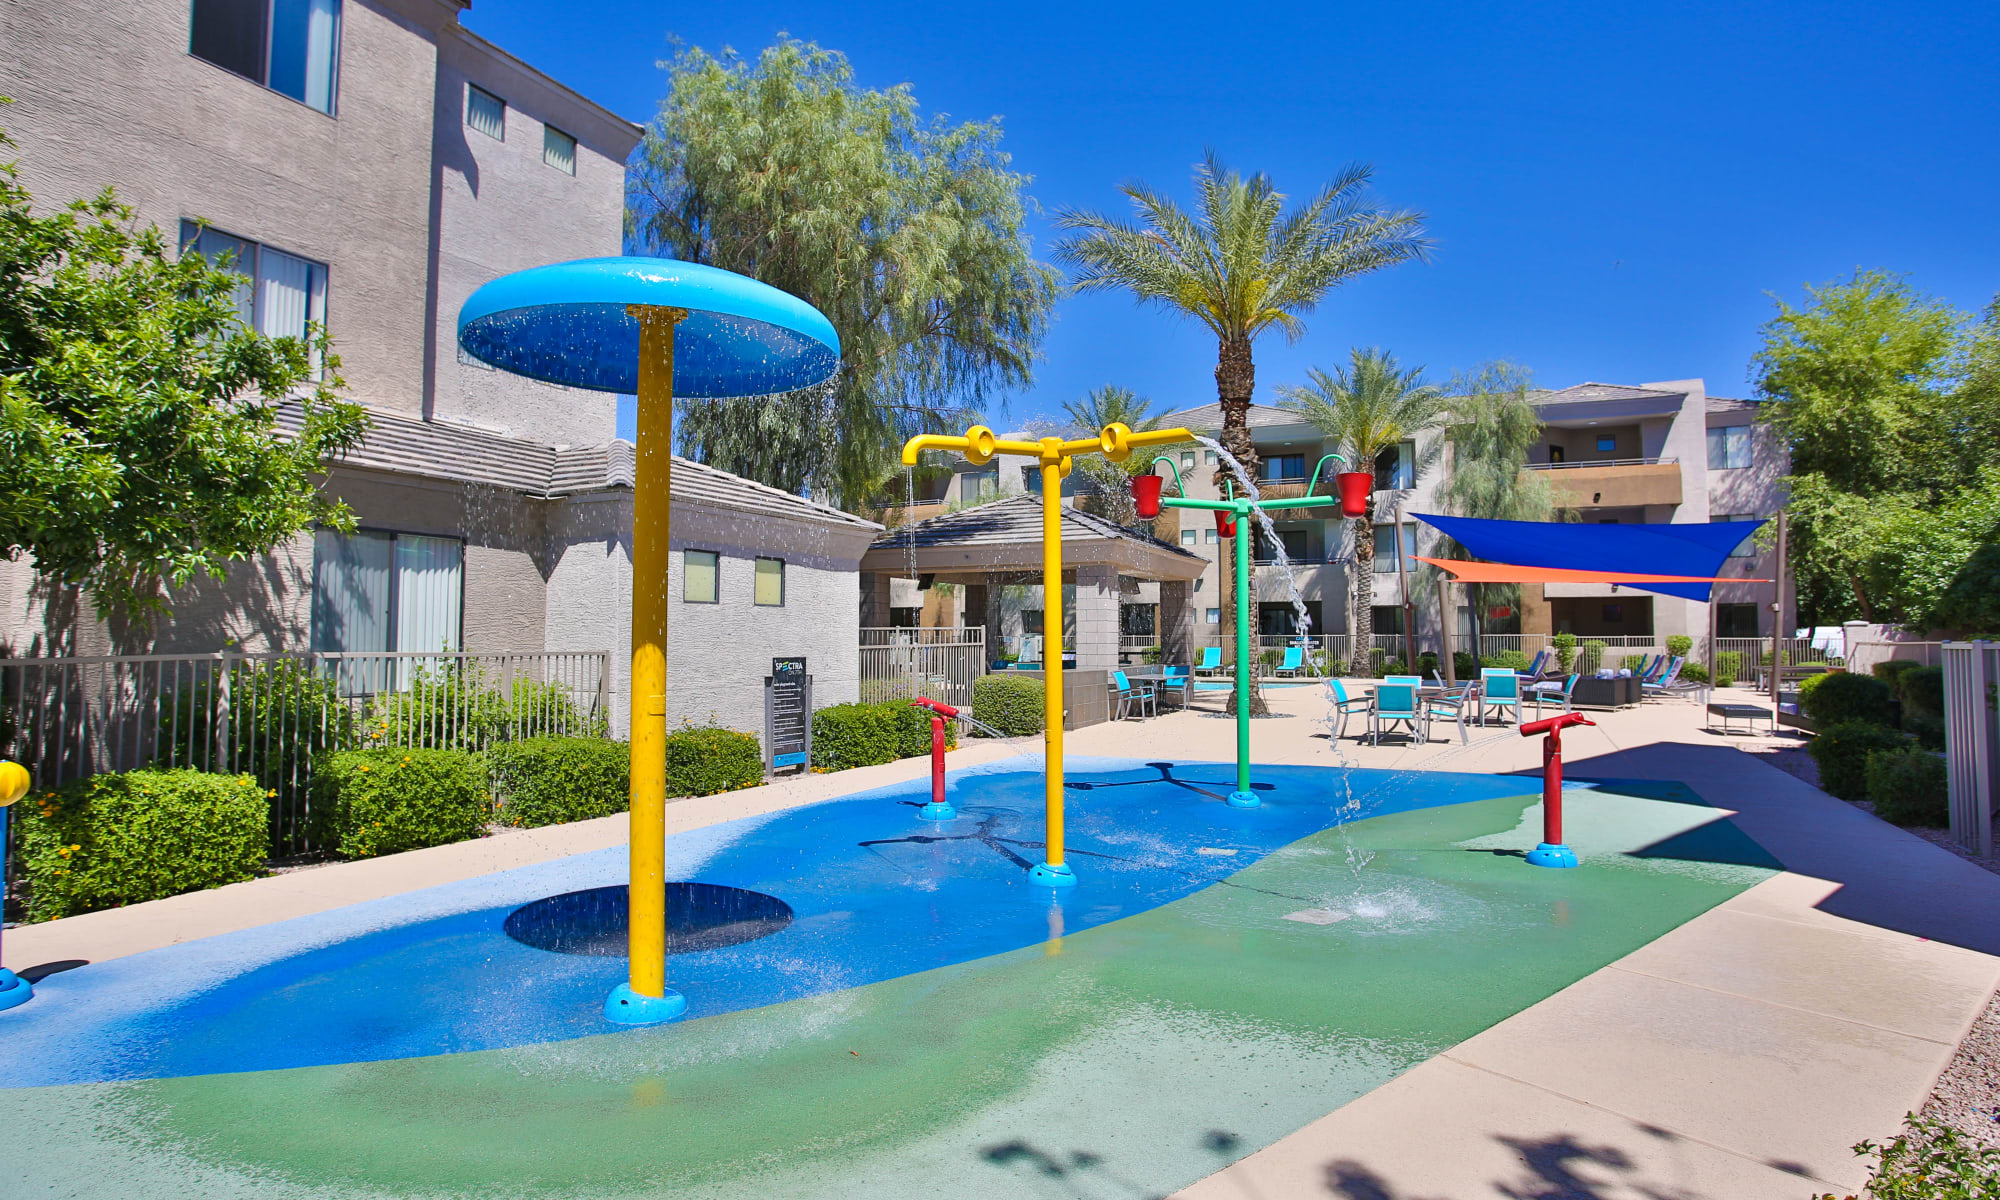 Wonderful water park at Spectra on 7th South in Phoenix, Arizona